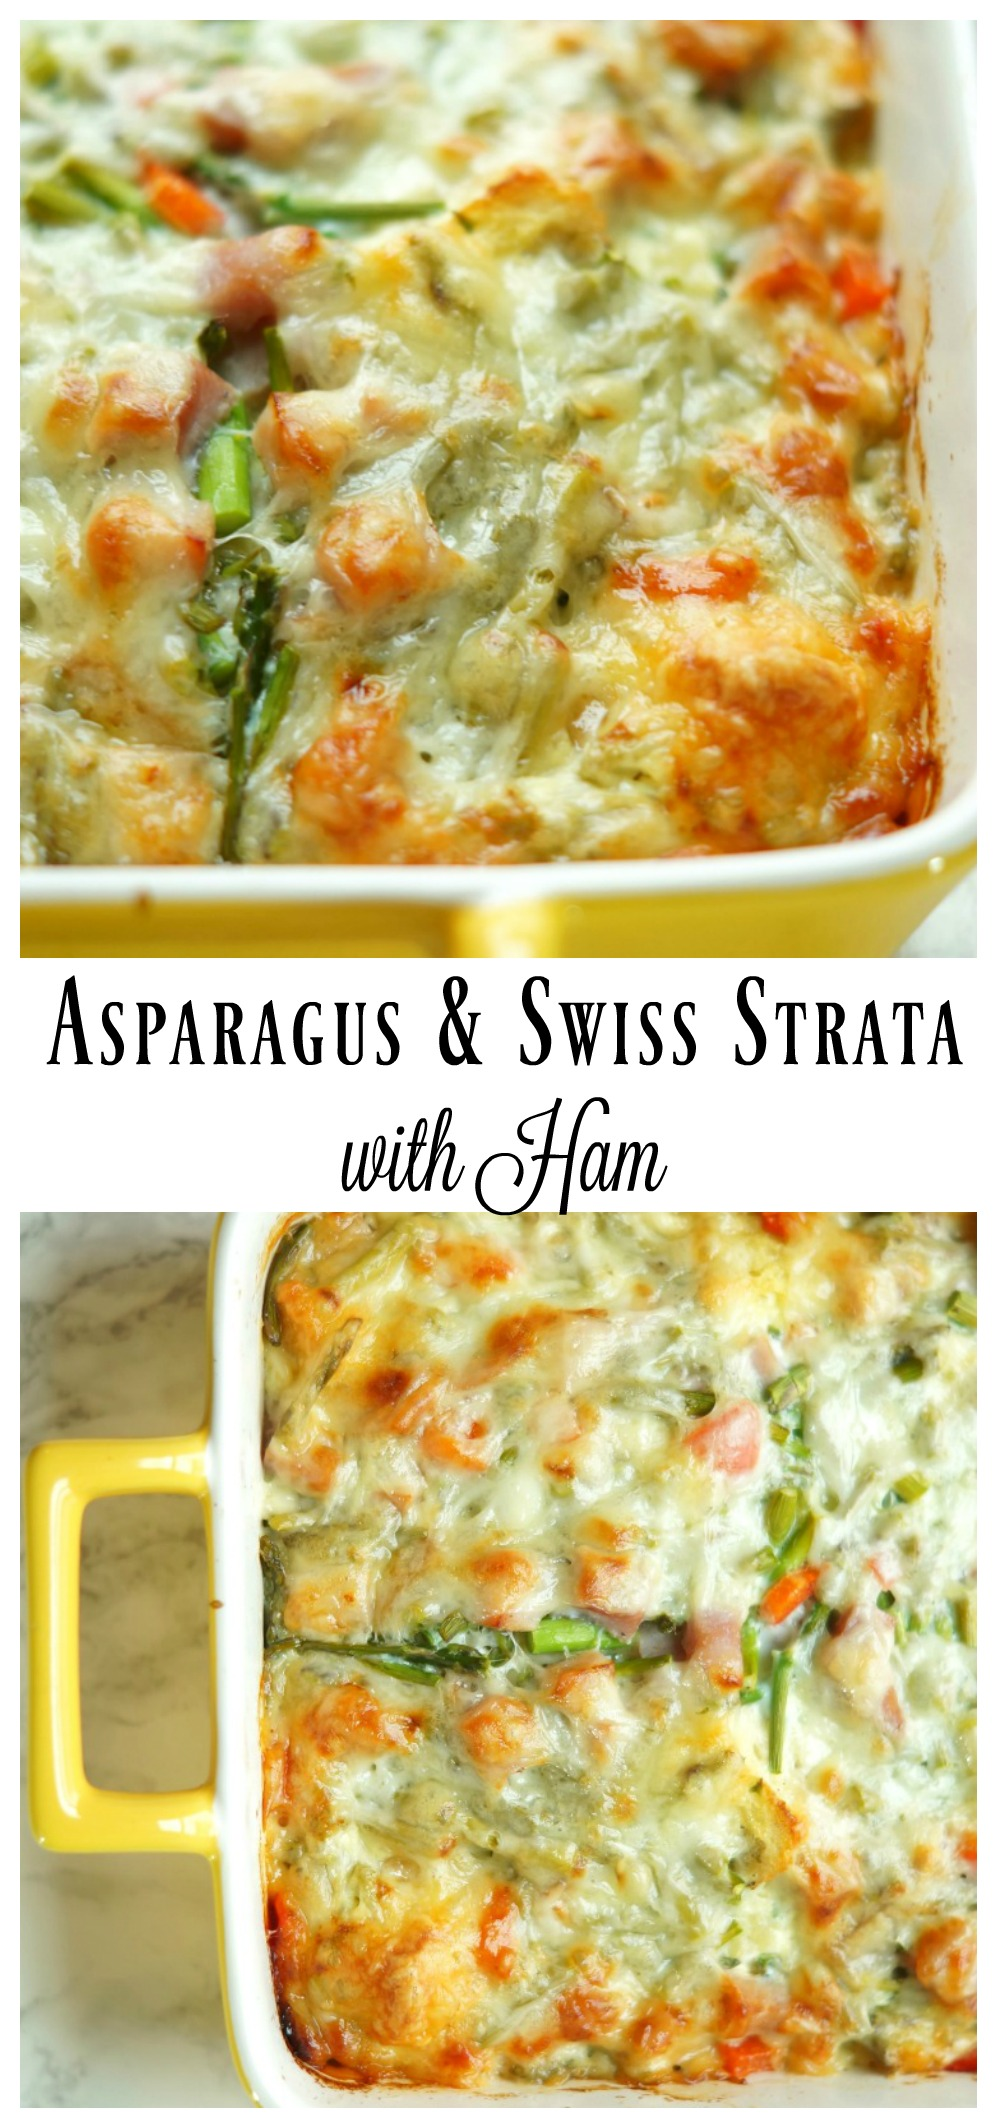 Asparagus and Swiss Strata with Ham is the perfect overnight breakfast casserole for Christmas morning!